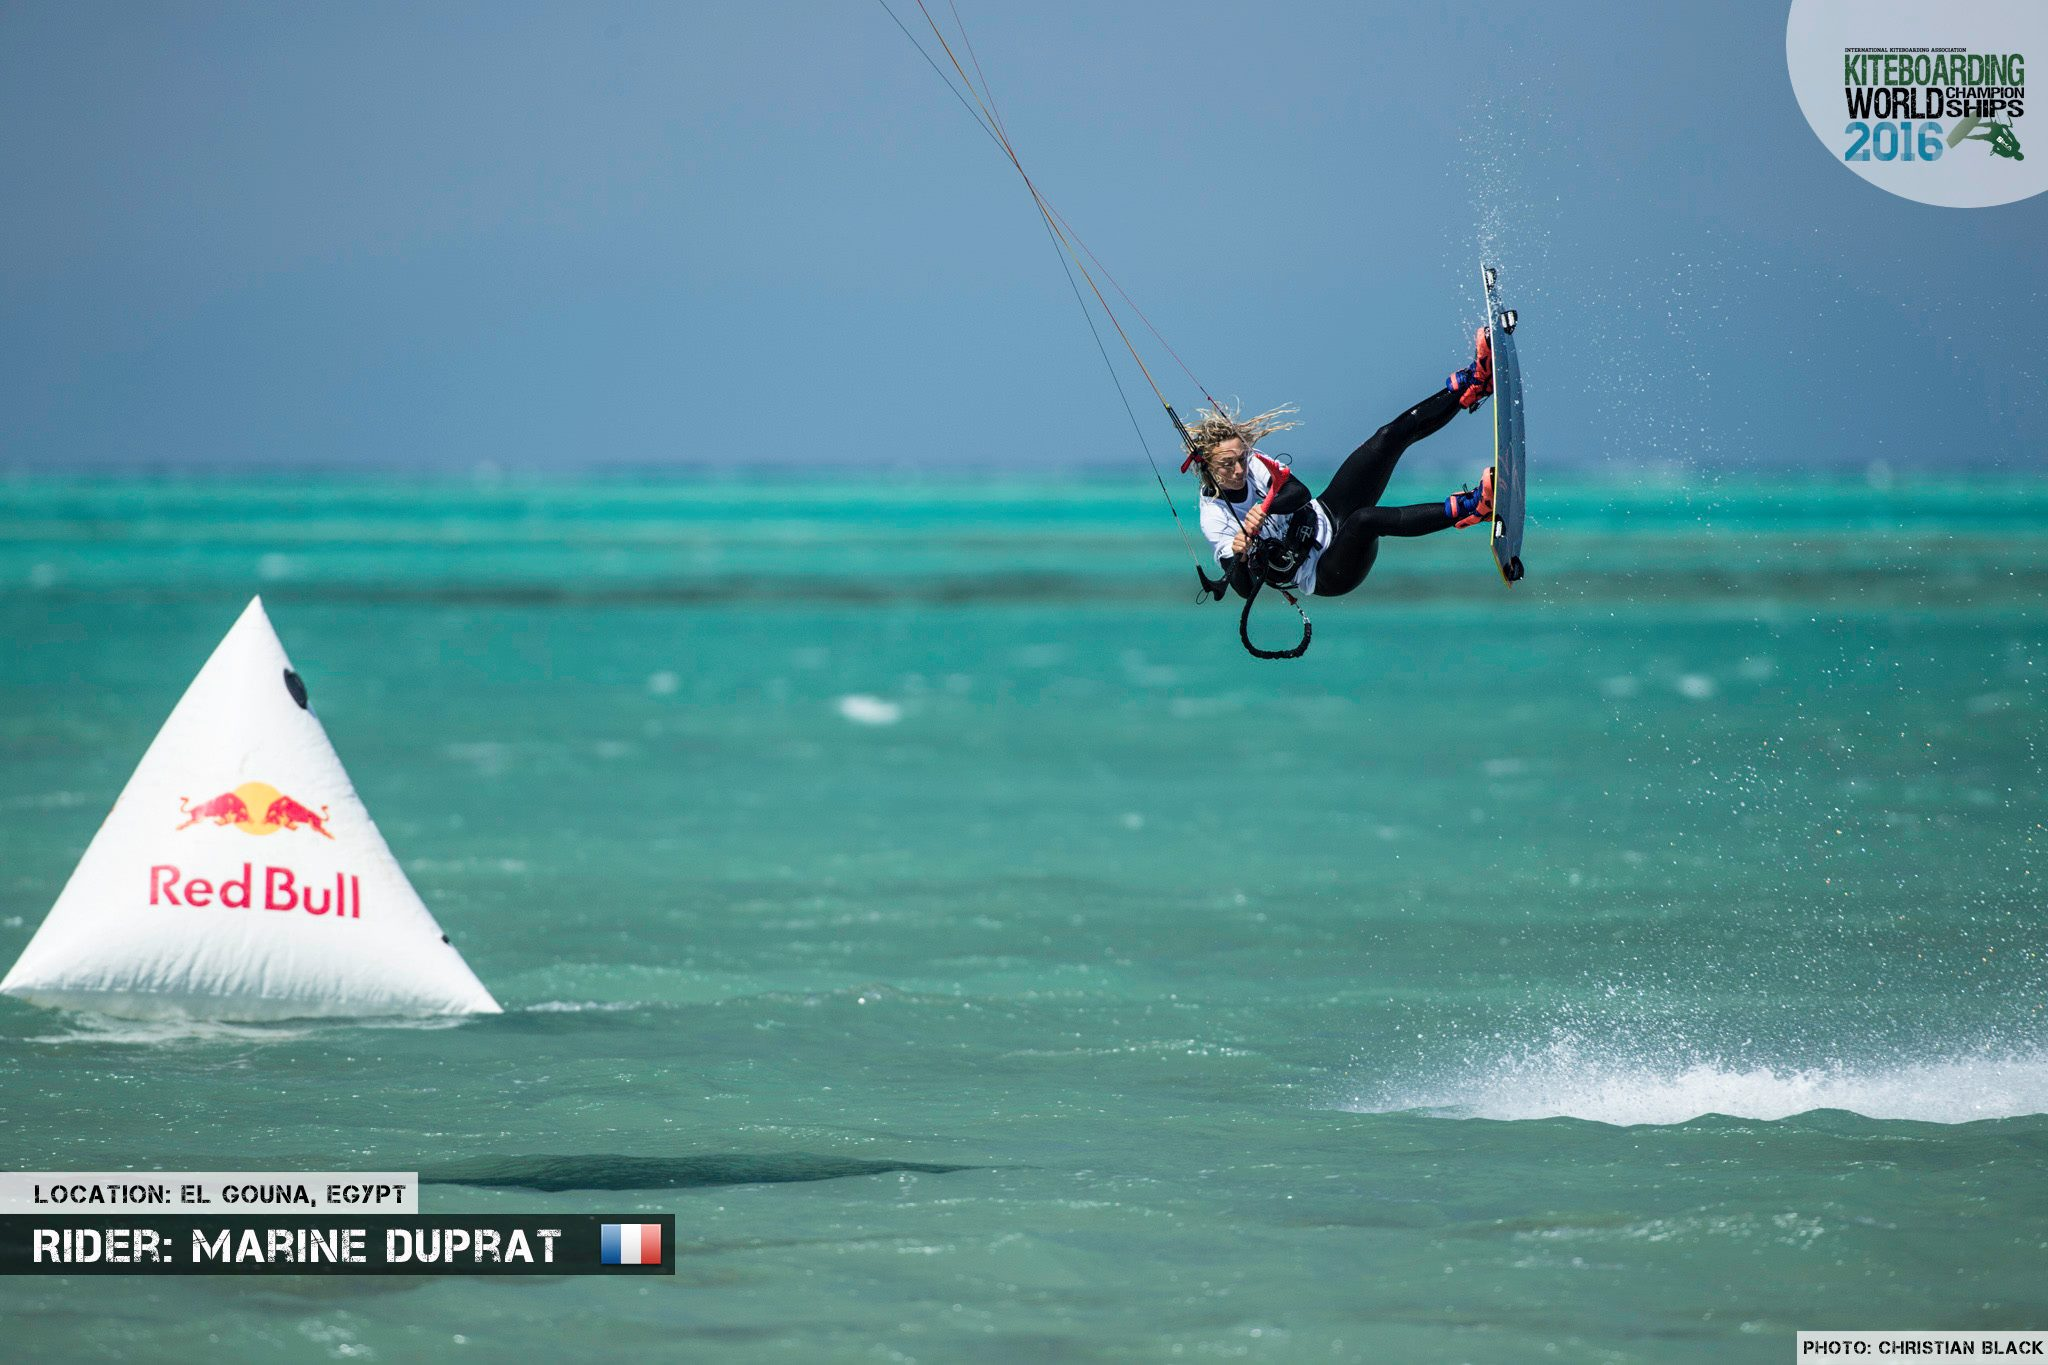 Marine Duprat freestyle 2016 El Gouna Grand Slam Day 2